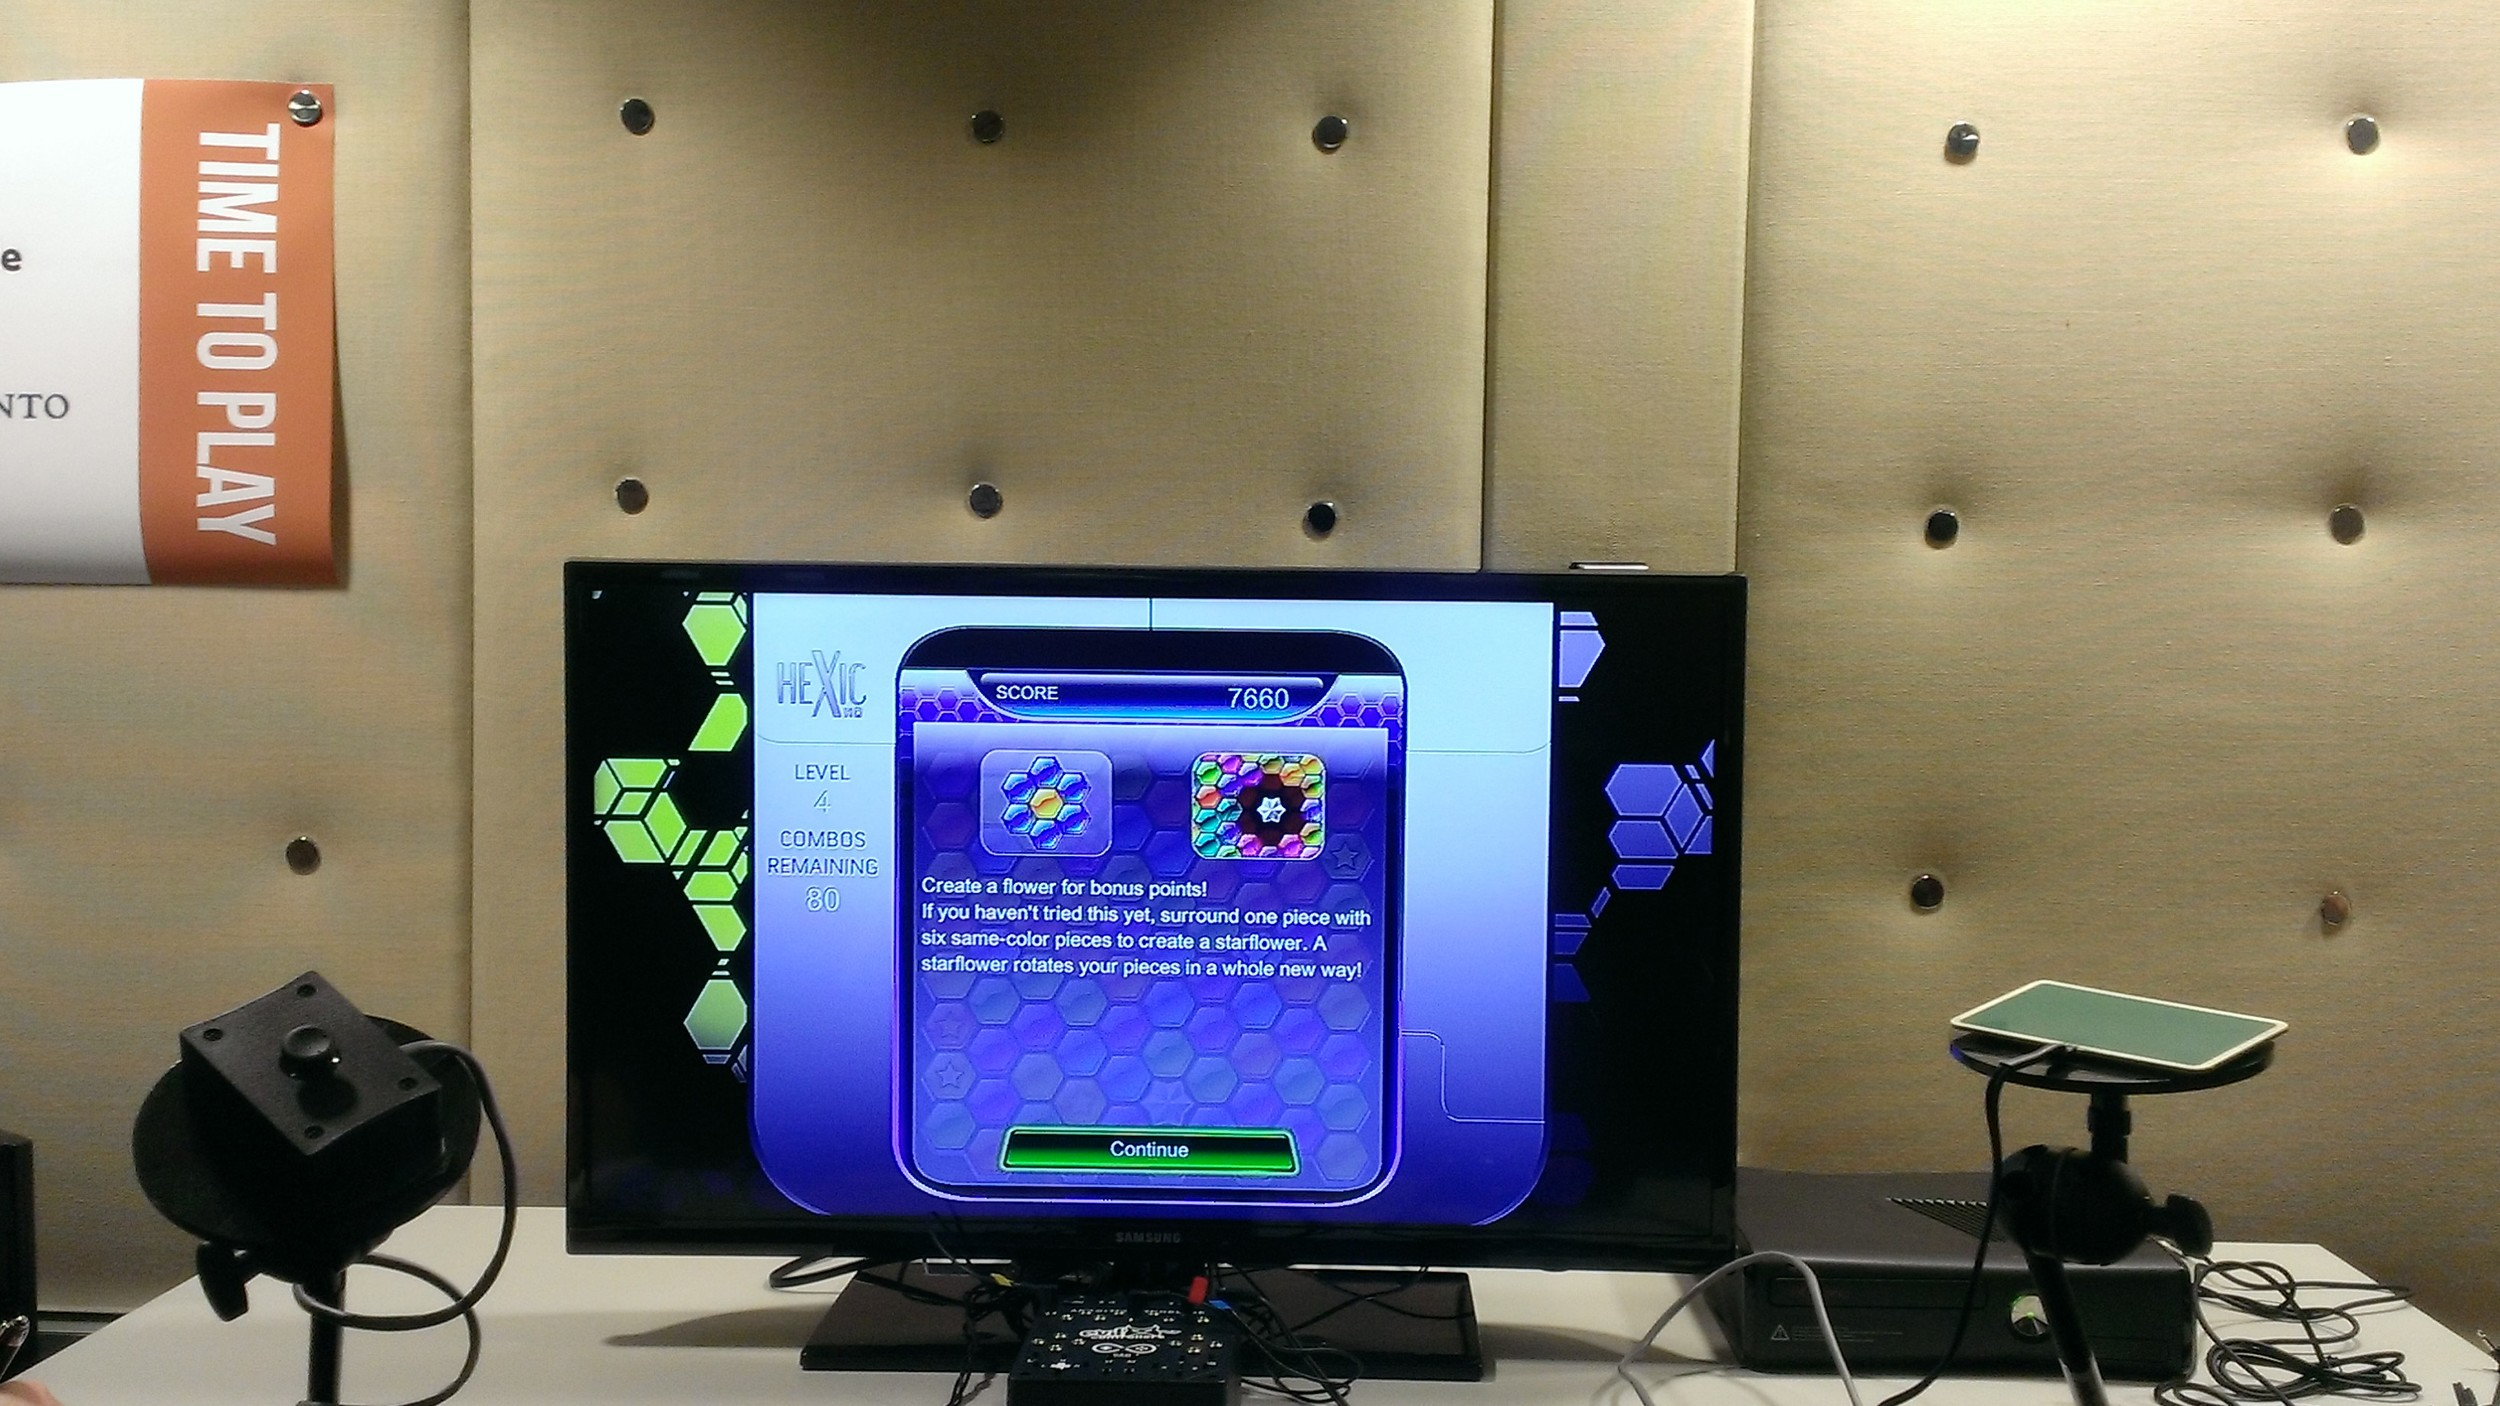 One of two available control pads for disabled individuals at the accessibility arcade in U of T.